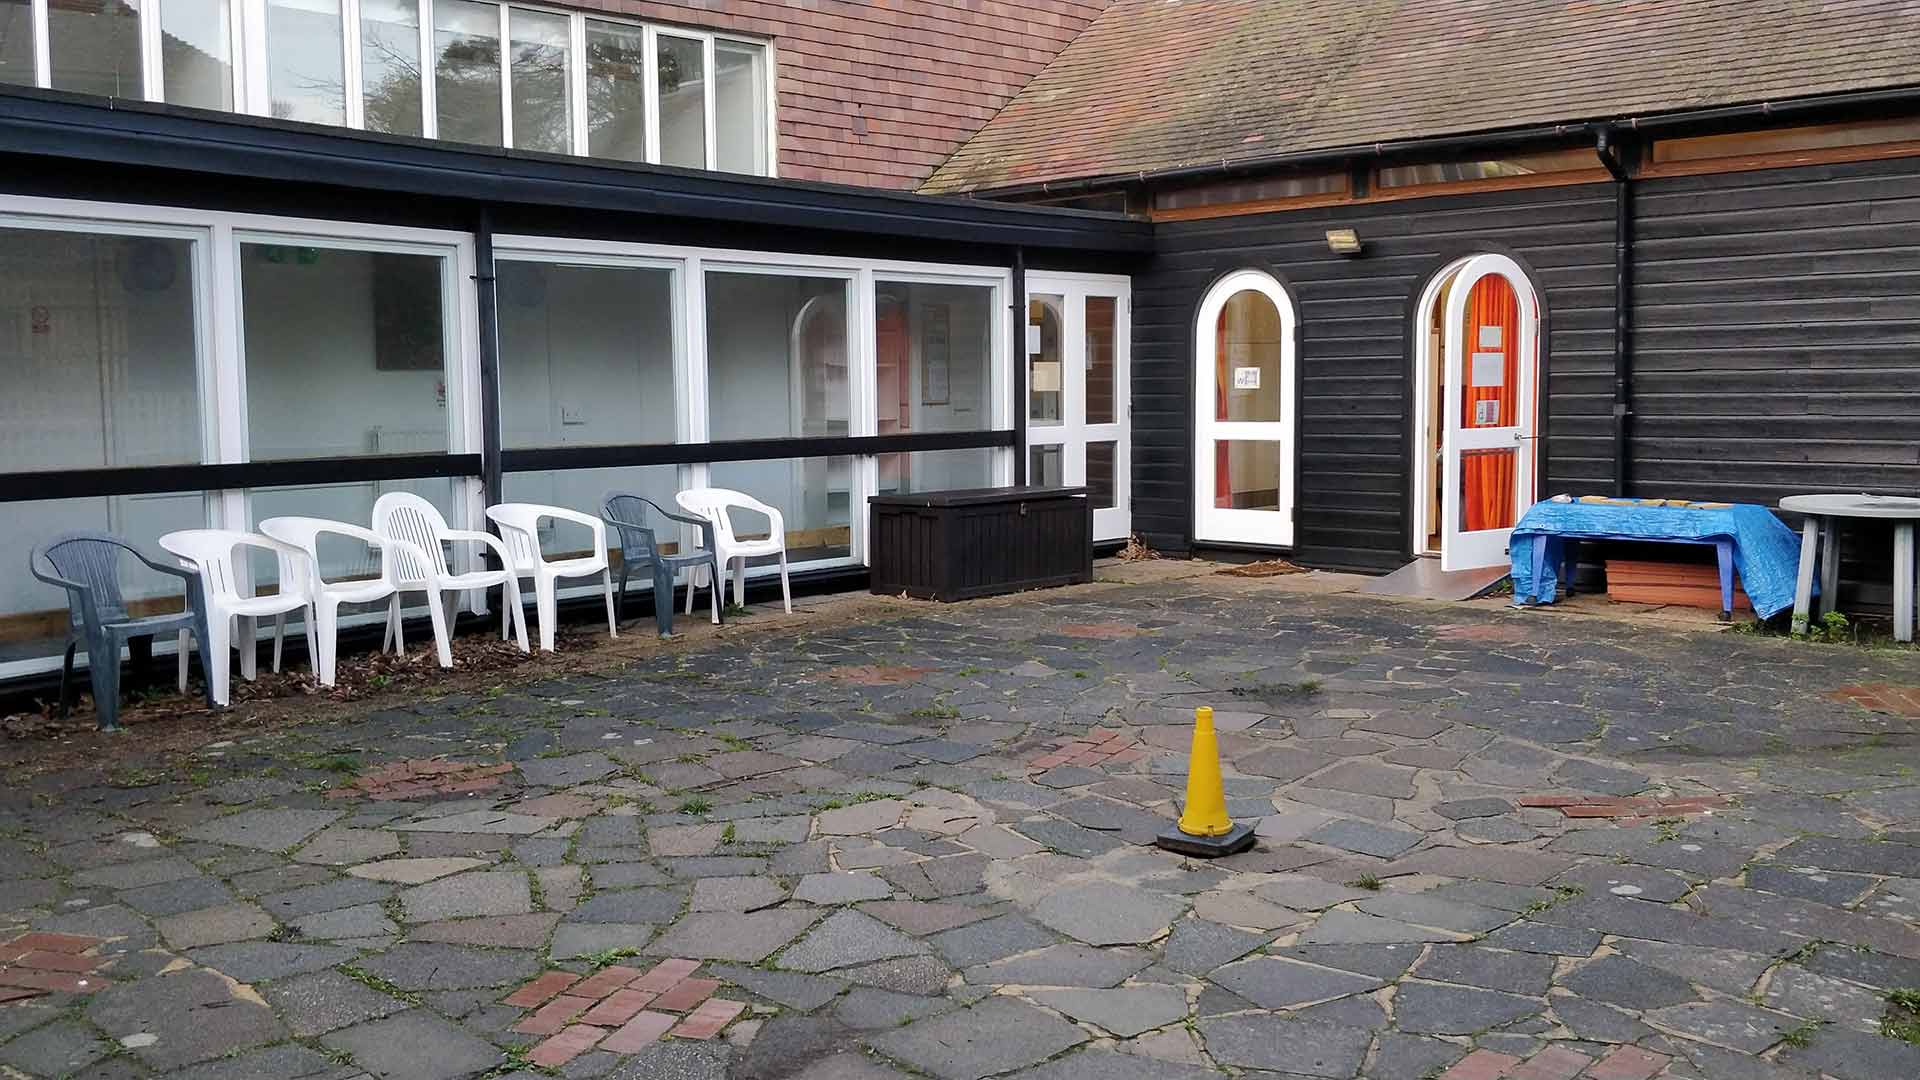 The outside play area of Rottingdean Whiteway Pre-School